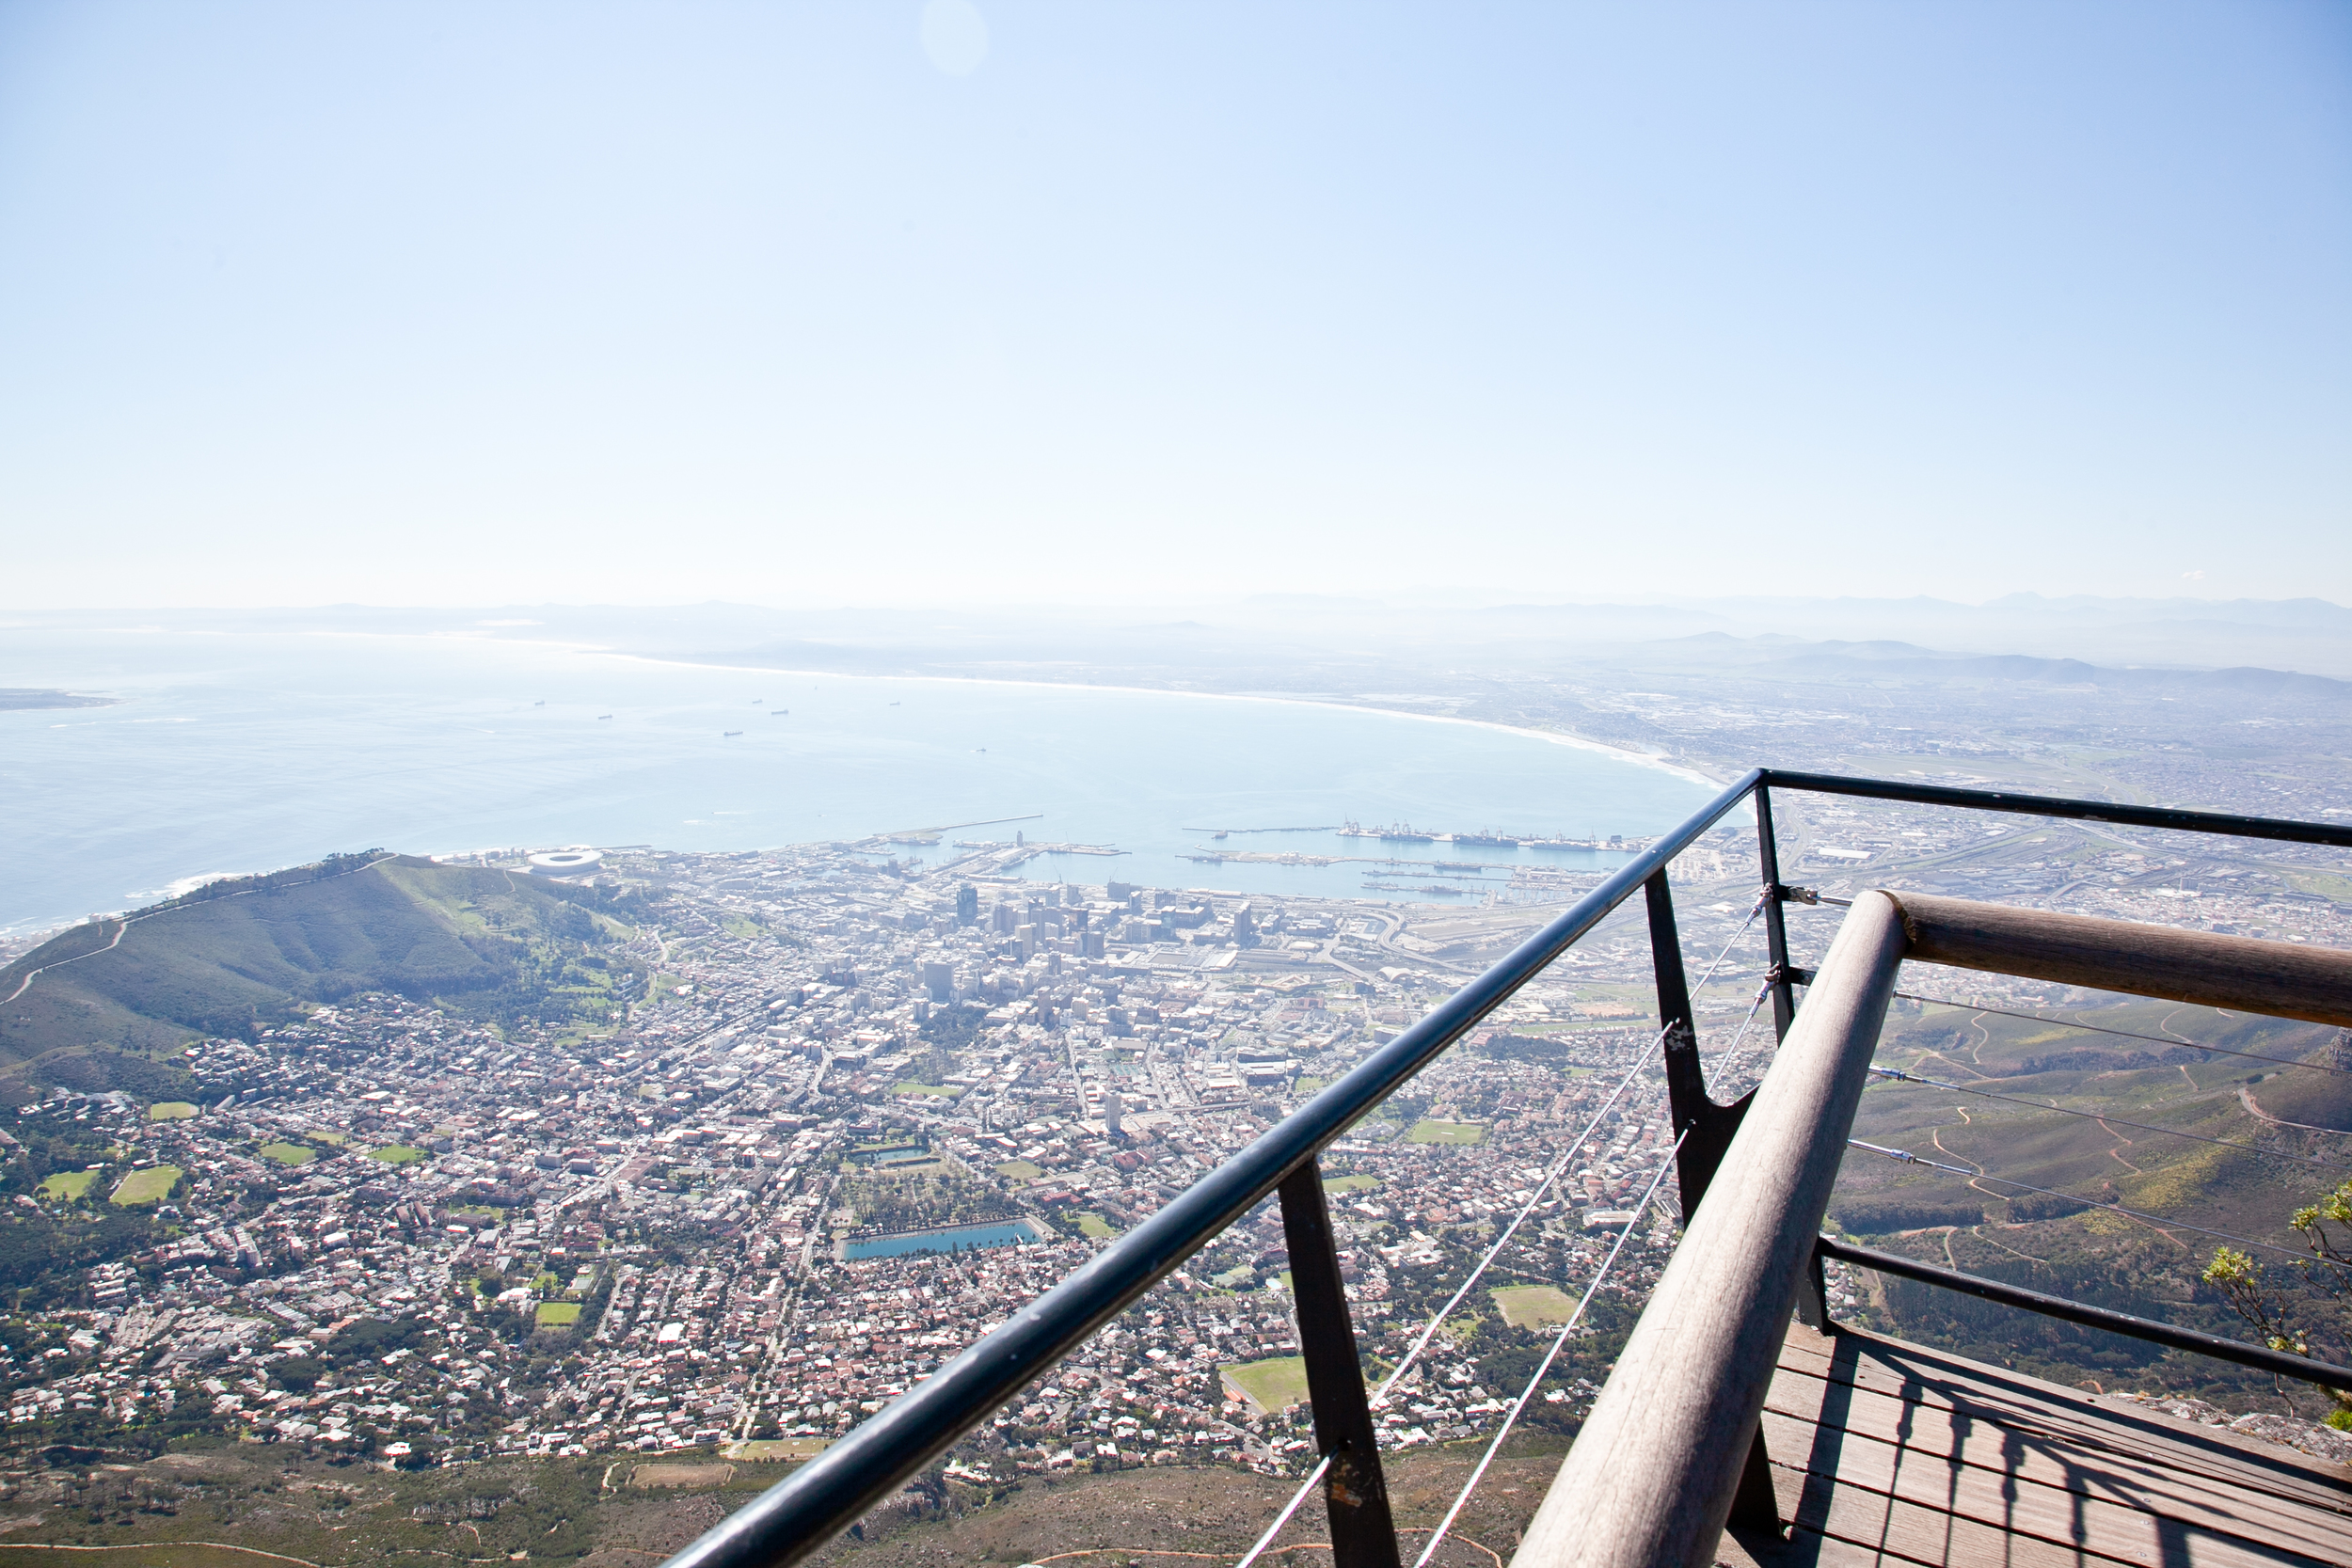 IMG_4676-table-mountain-cape-town-south-africa-trisa-taro.jpg